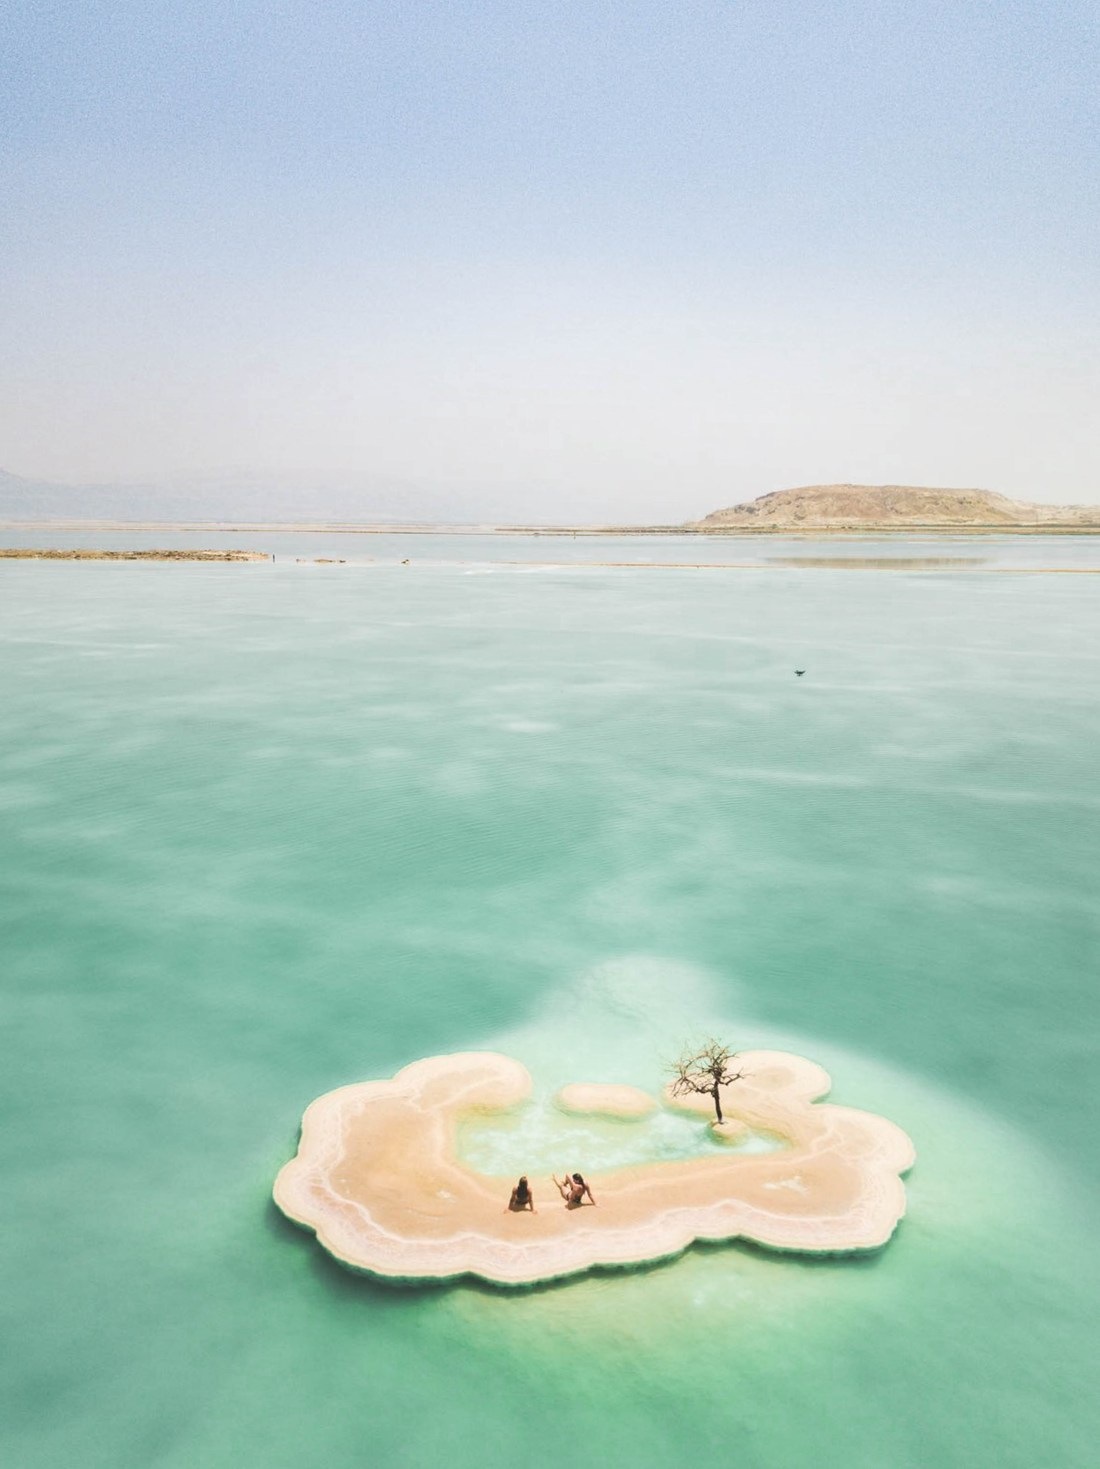 Everything You Need To Know To Swim In The Dead Sea - Becky